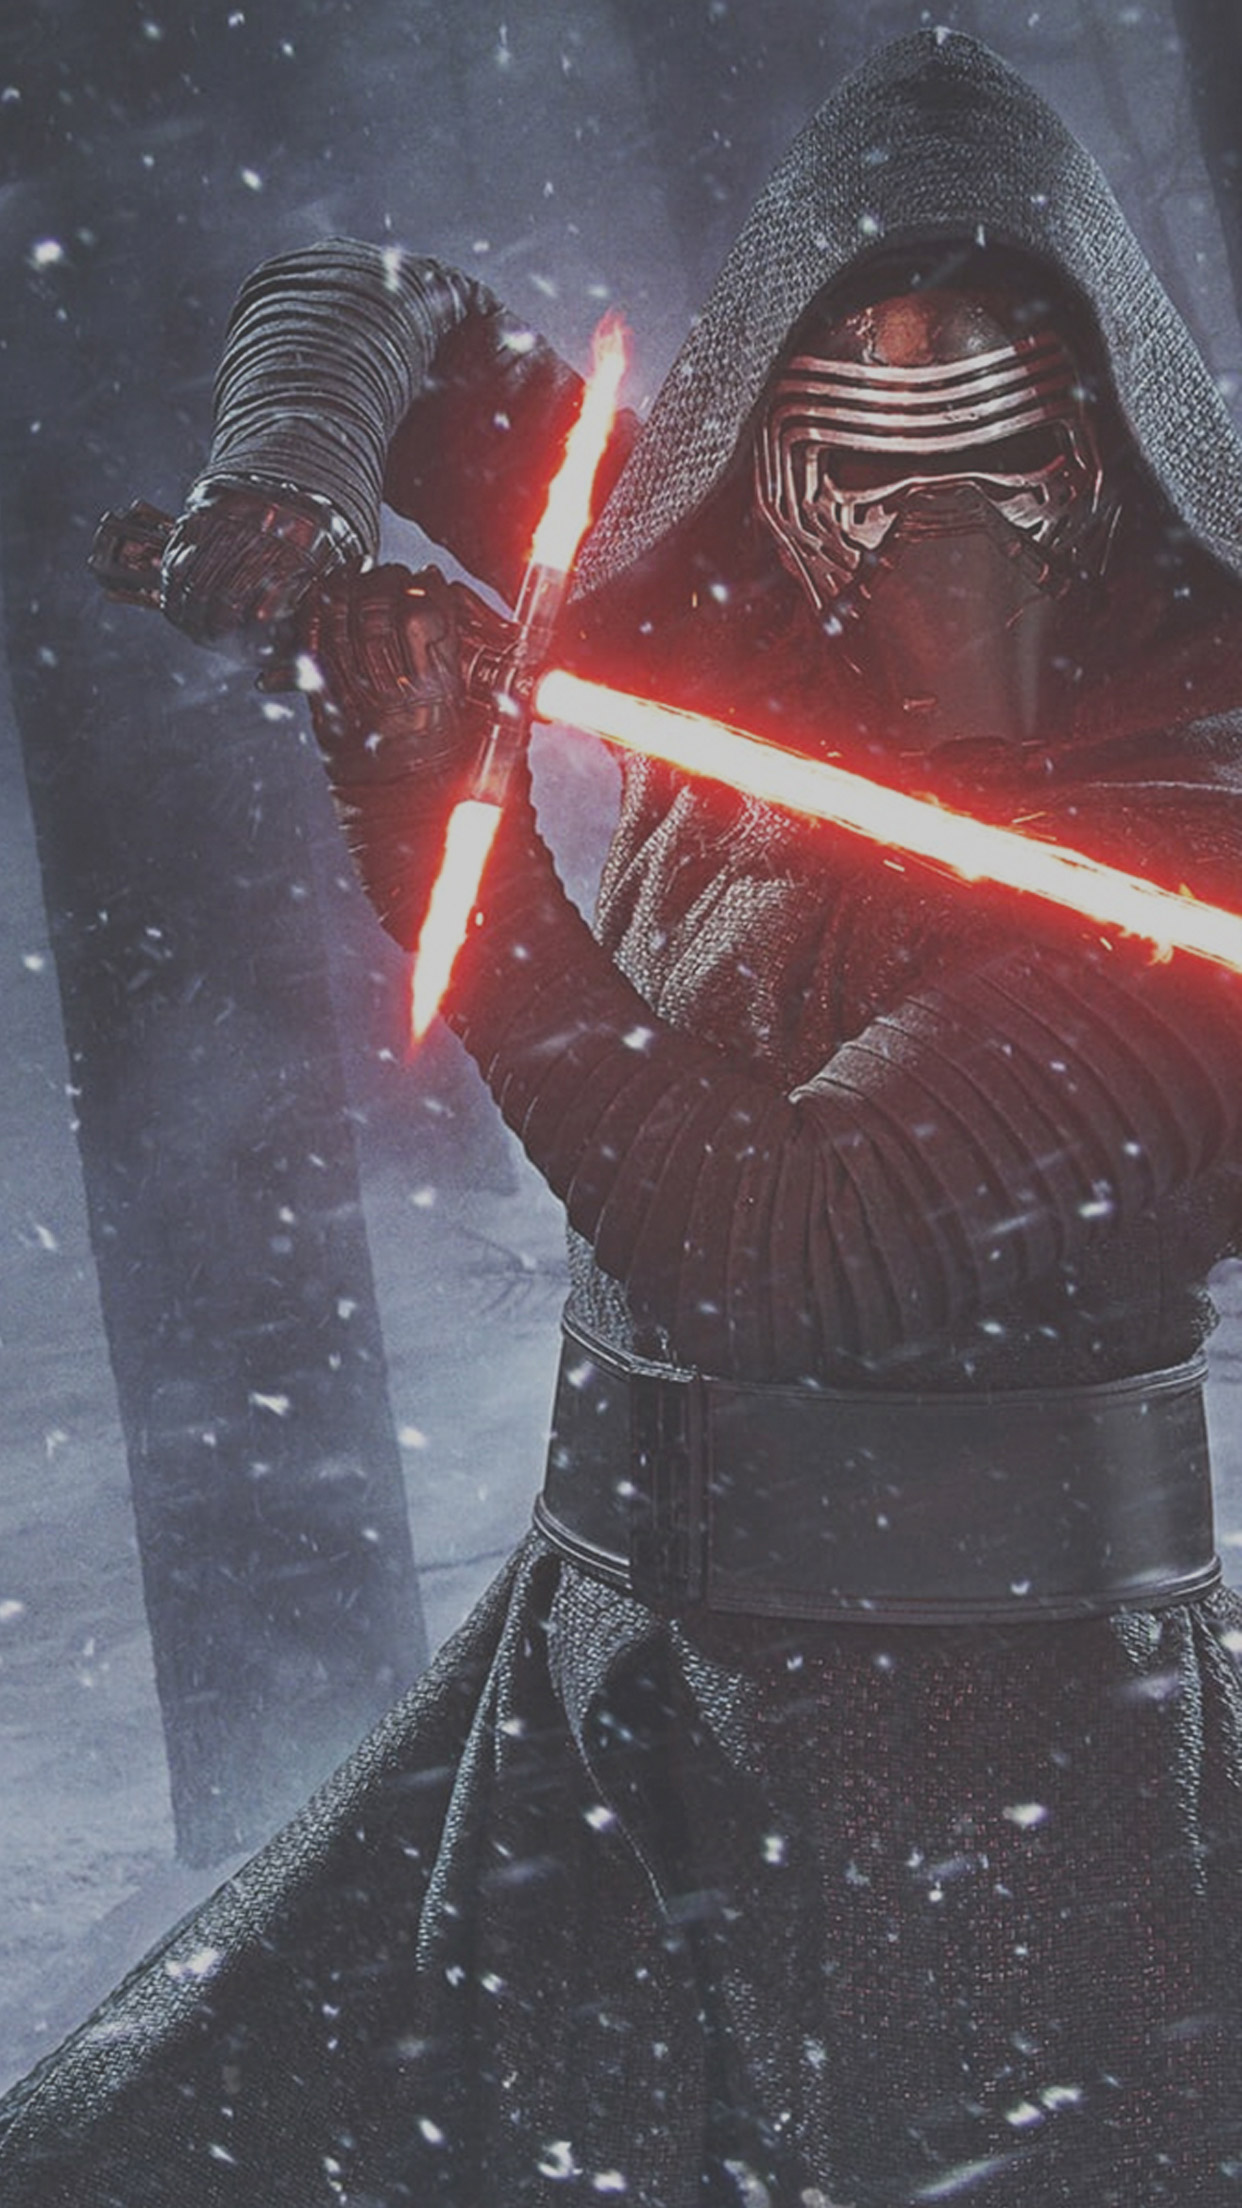 Star-Wars-The-Force-Awakens-Kylo-Ren-Lightsaber-Wallpaper-iDeviceArt